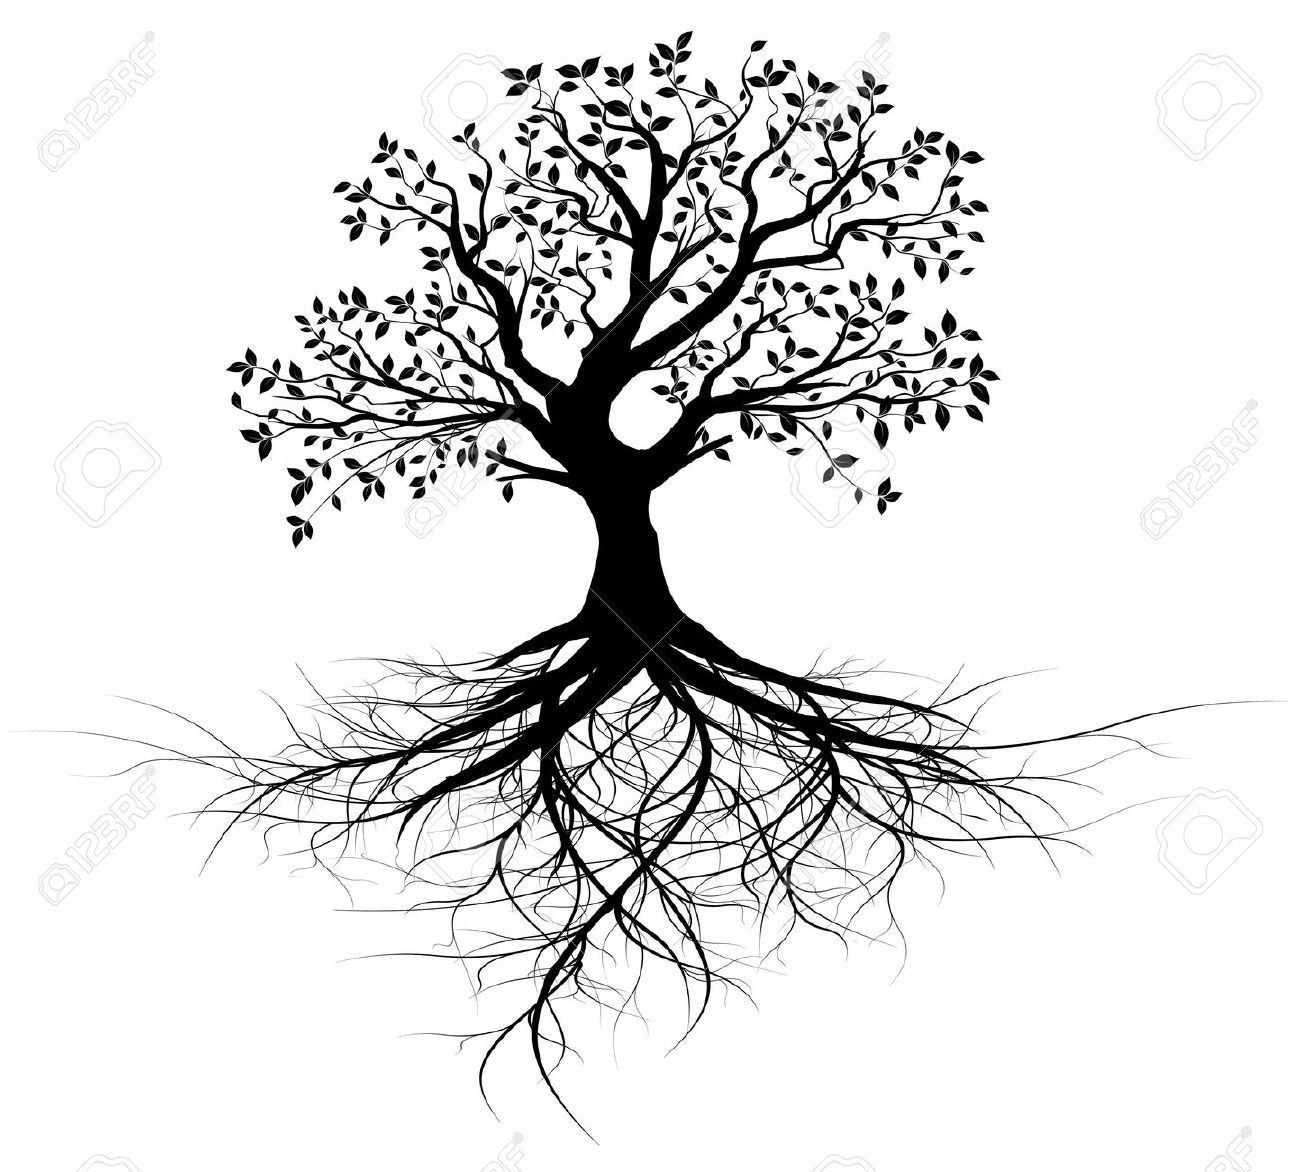 Free Black And White Clipart Tree With Roots